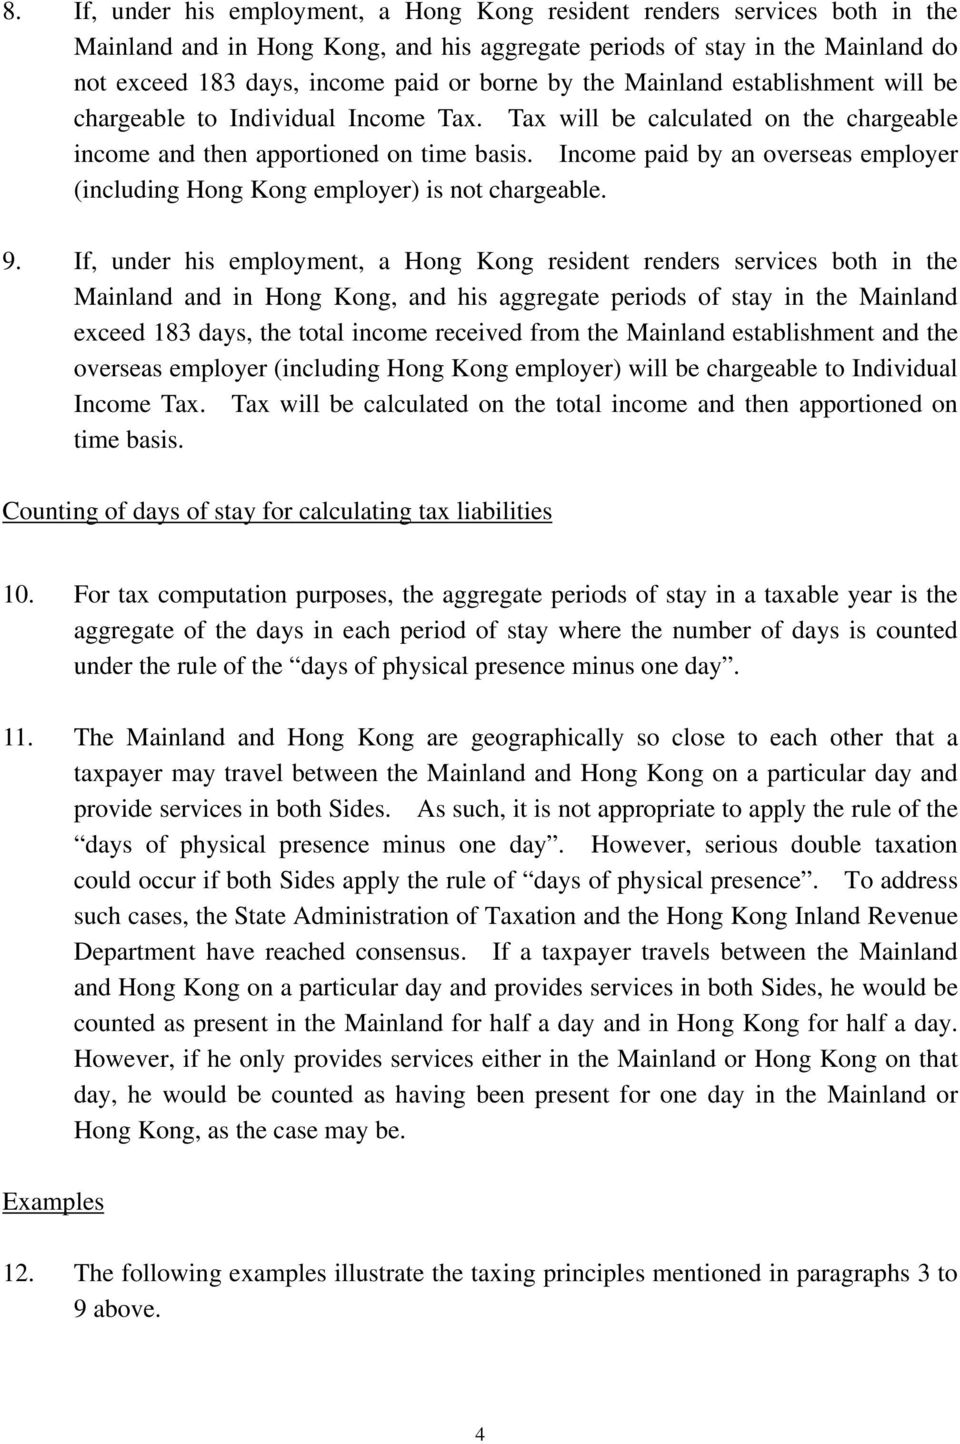 Income paid by an overseas employer (including Hong Kong employer) is not chargeable. 9.